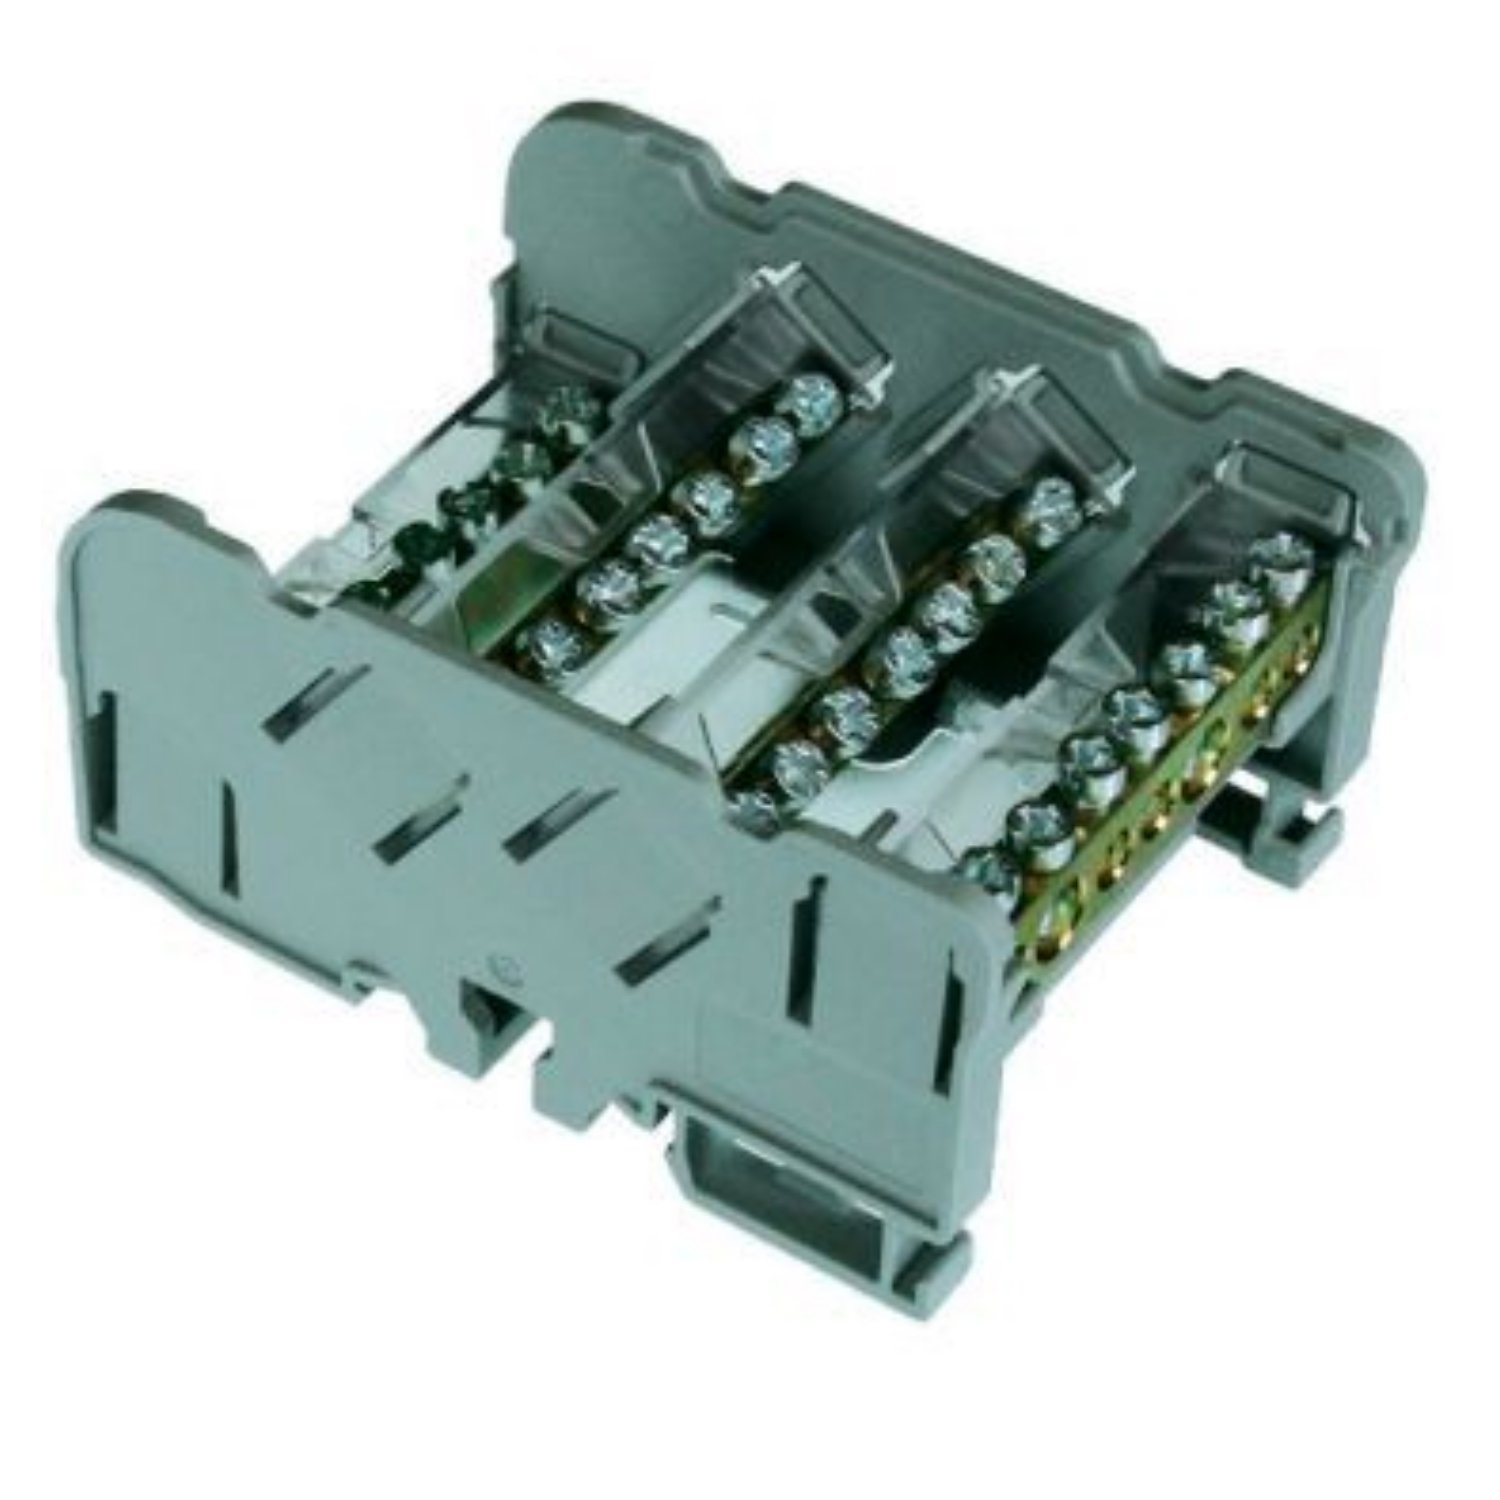 ASI QBLOK4125 Power Distribution Module, 4 Busbars, 125 Amp, 500V, 11 Connections